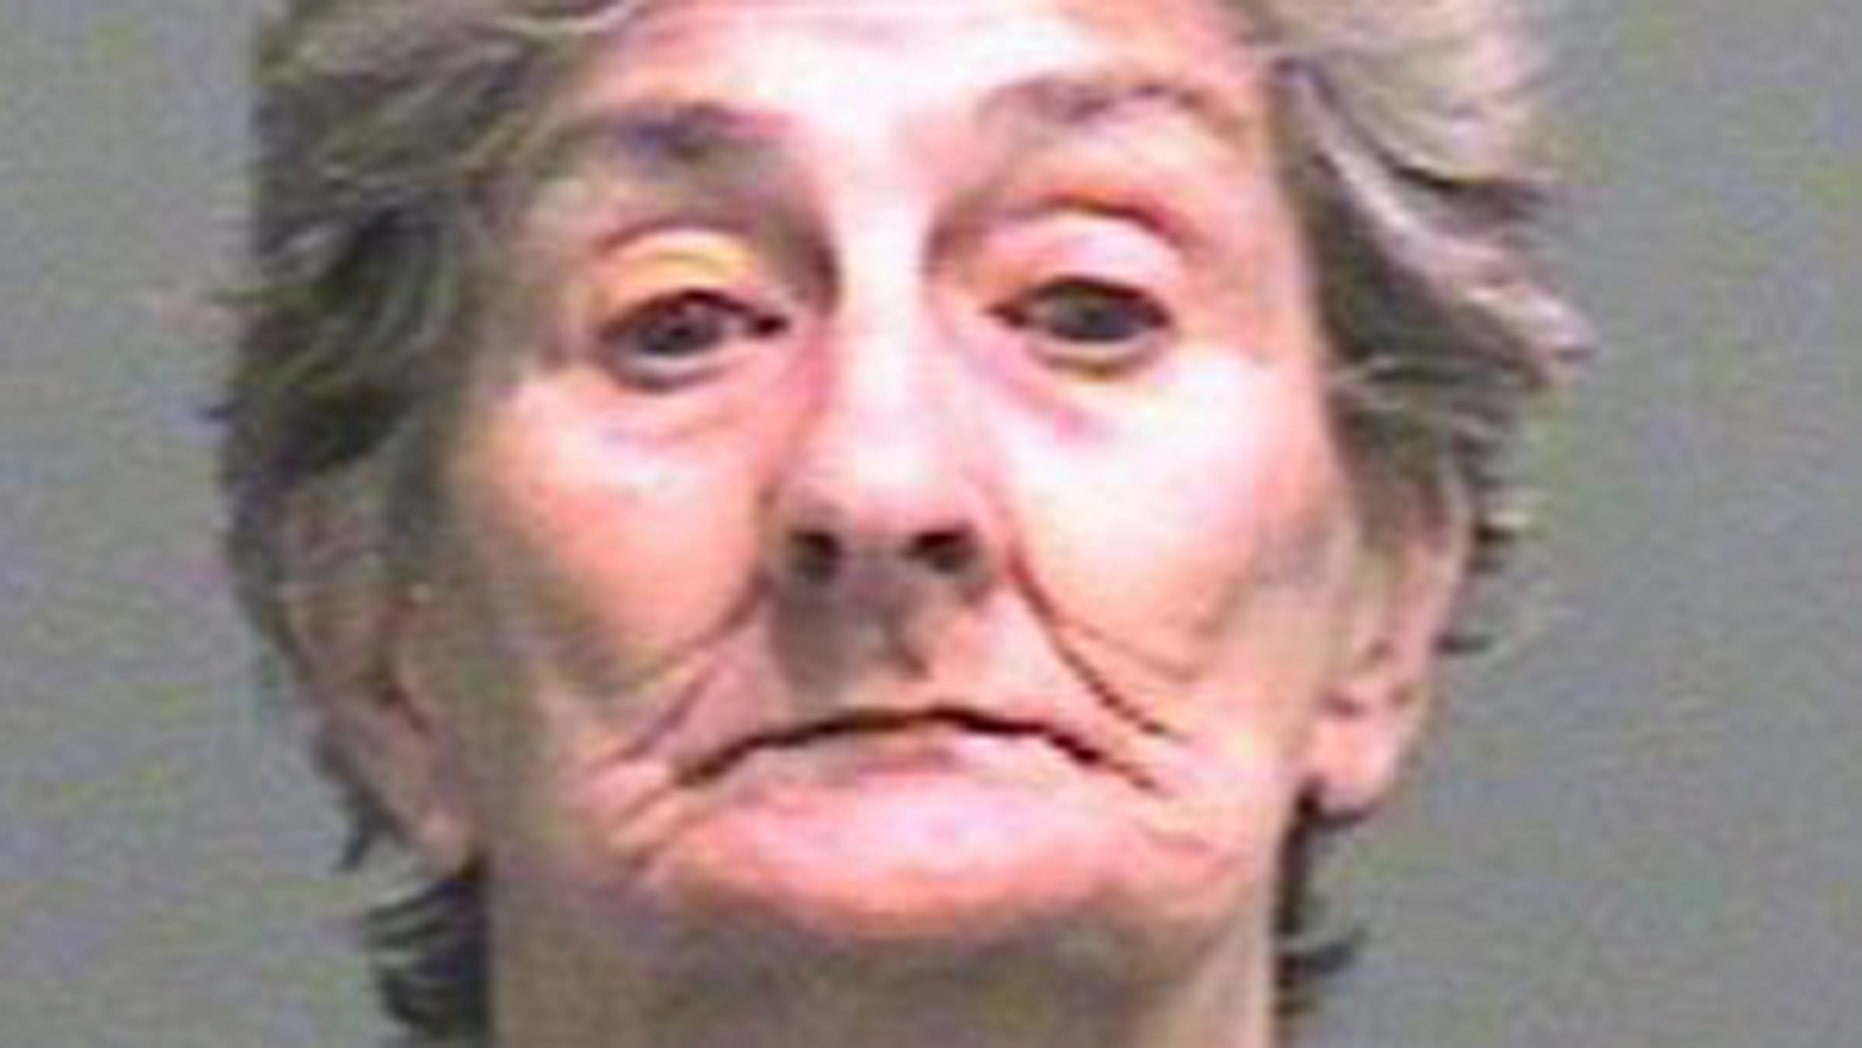 Lois Arlene Janish, 74, is charged with open murder related to the 1998 disappearance of her granddaughter.